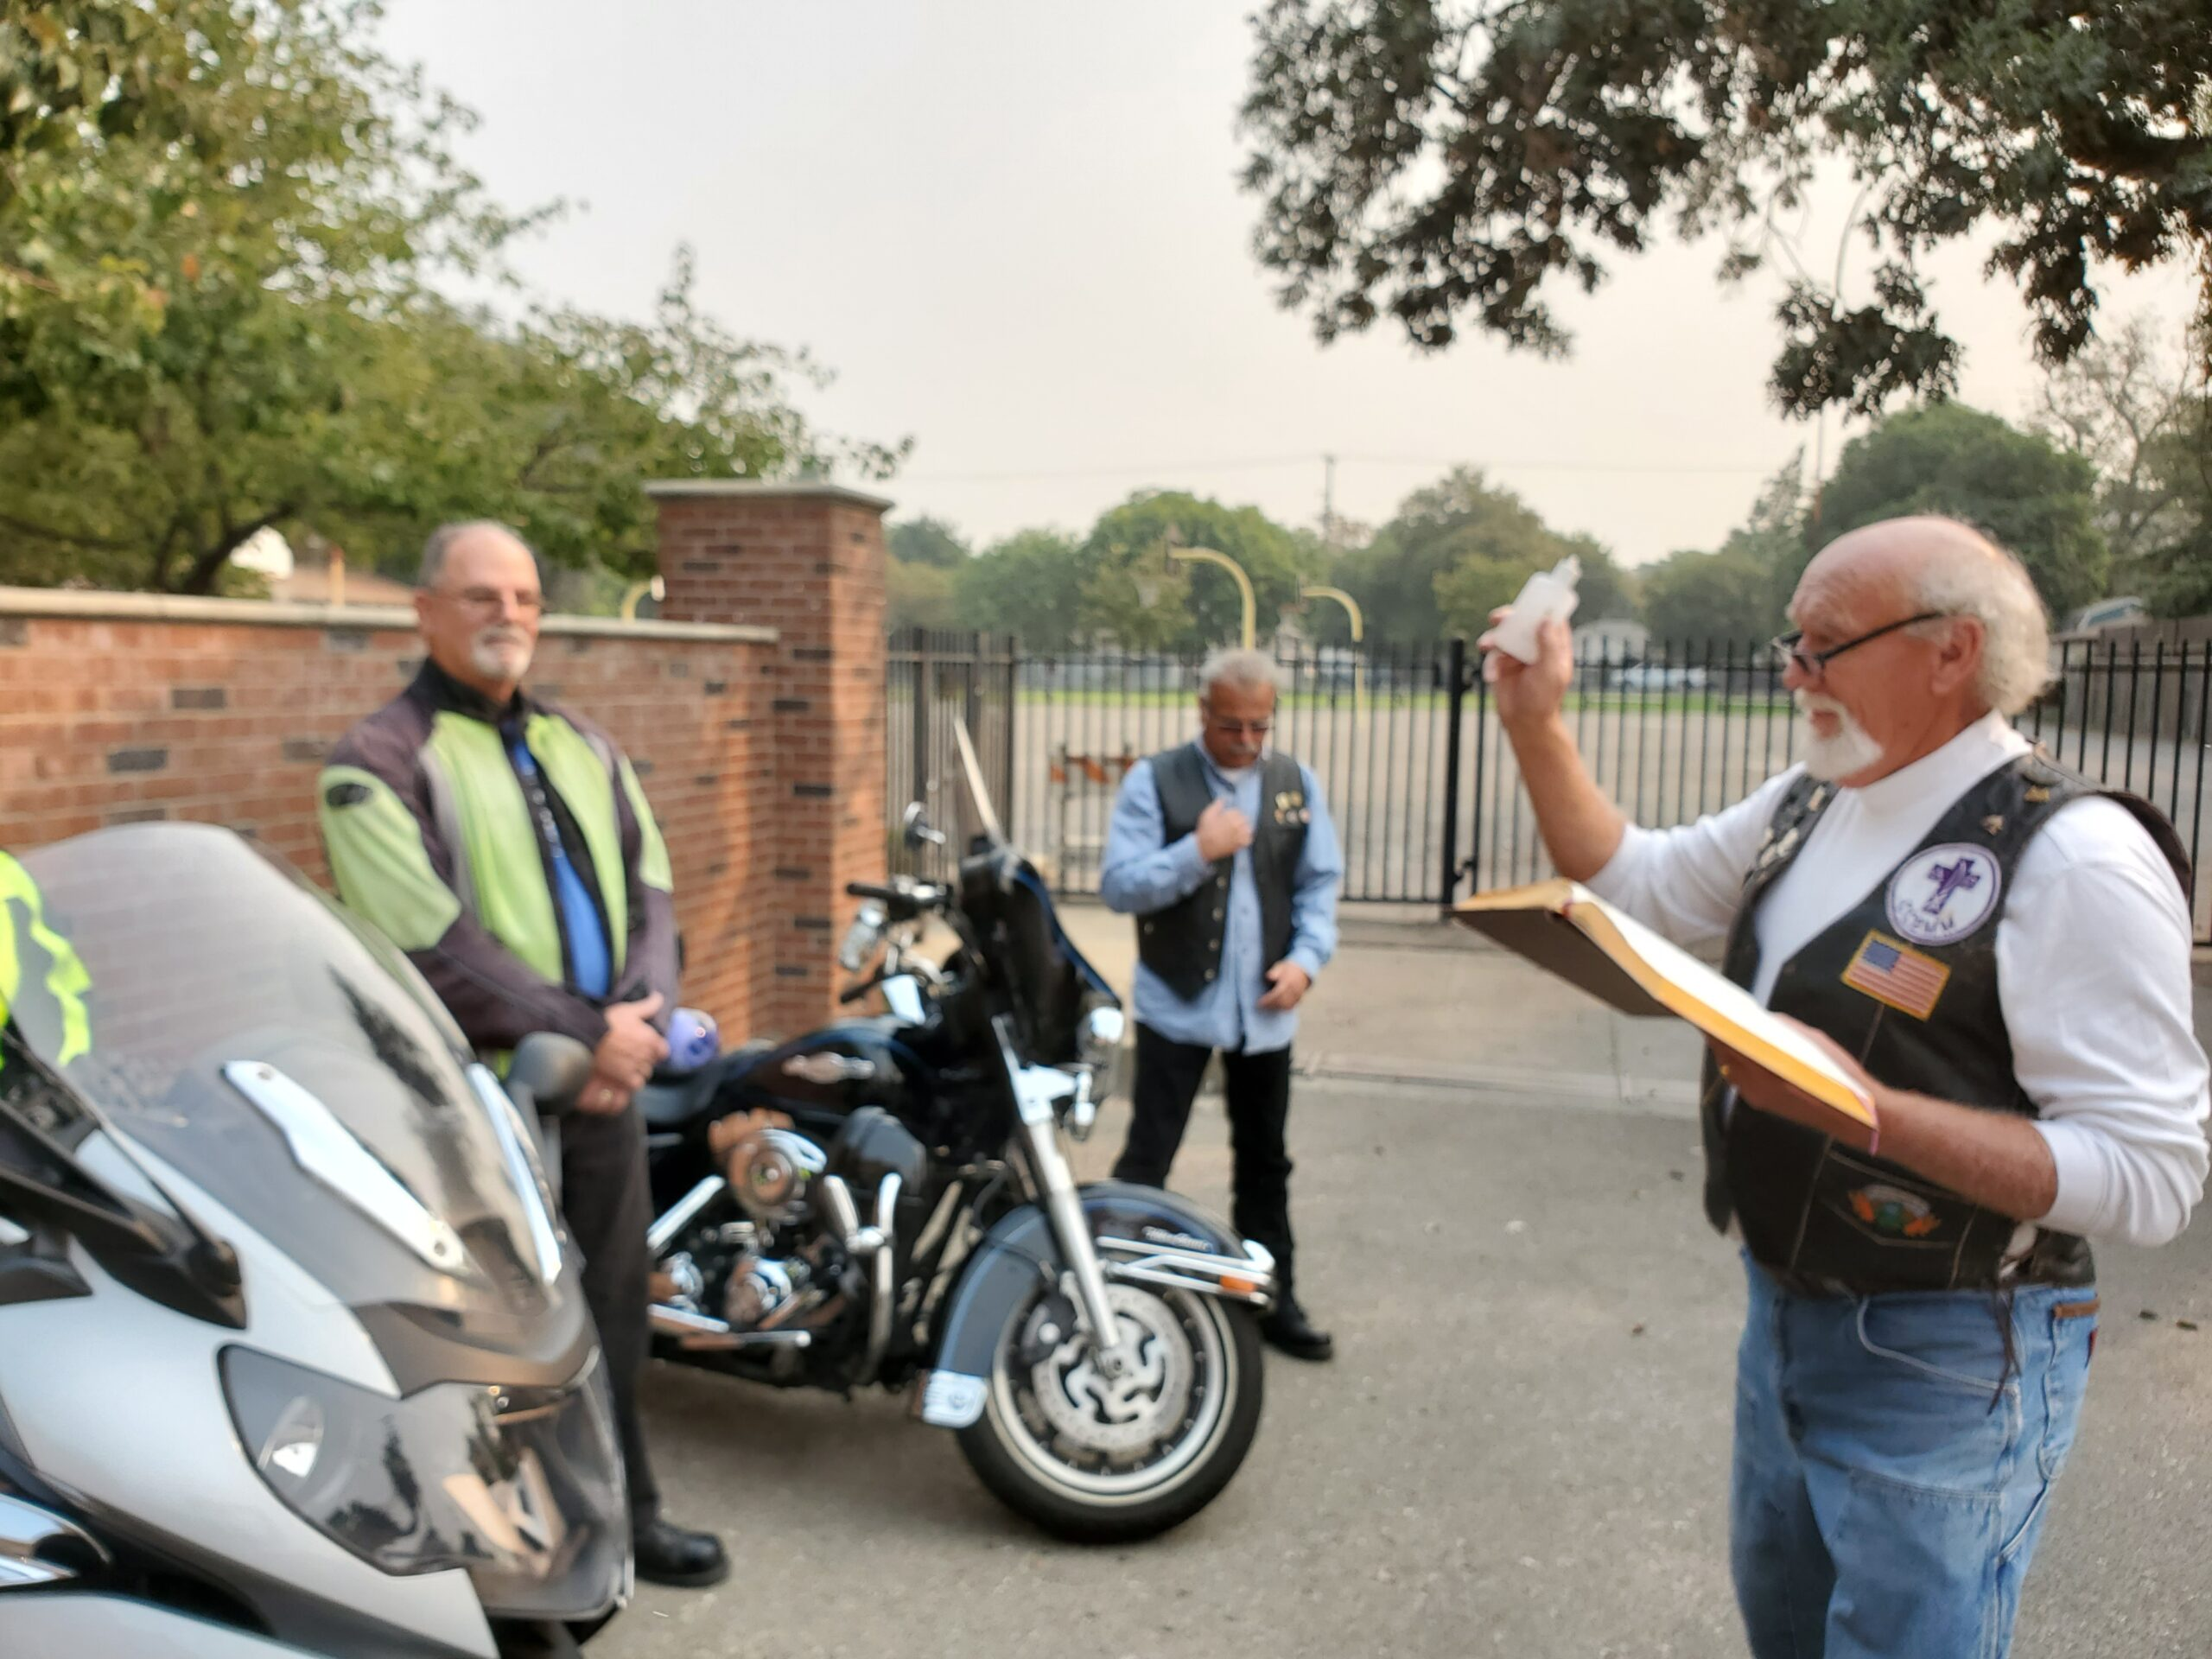 Deacon Greg blessing the bikes